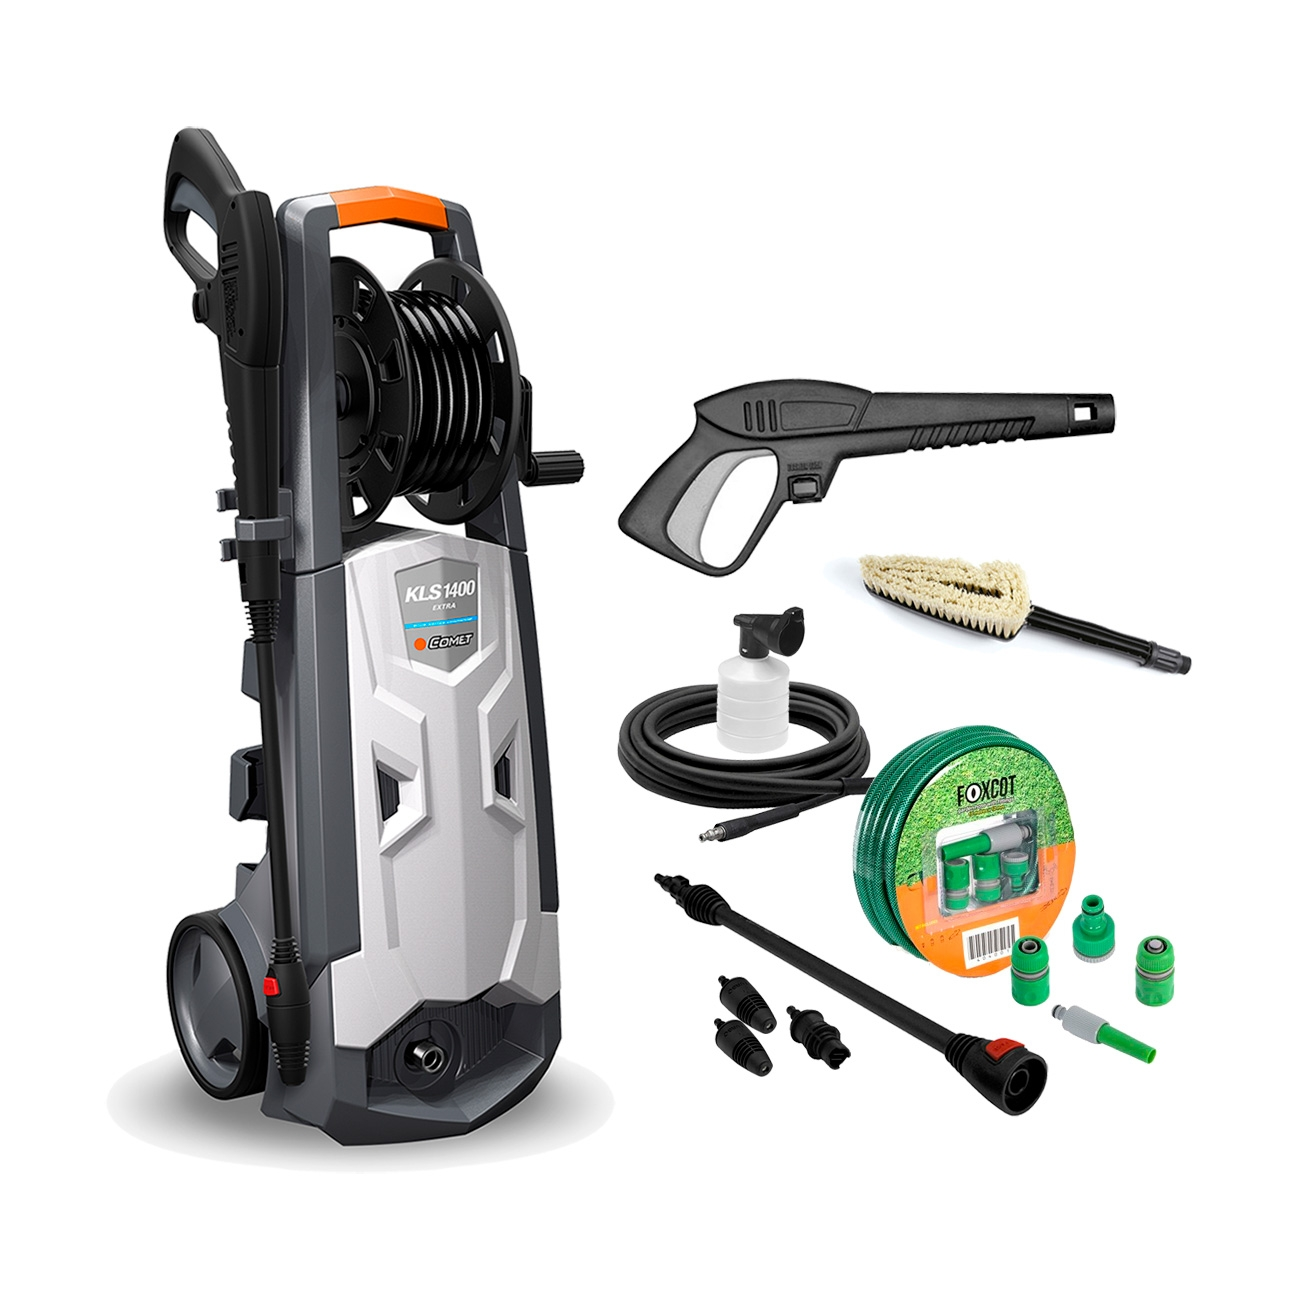 Comet KLS 1400 Extra Cold water pressure washer